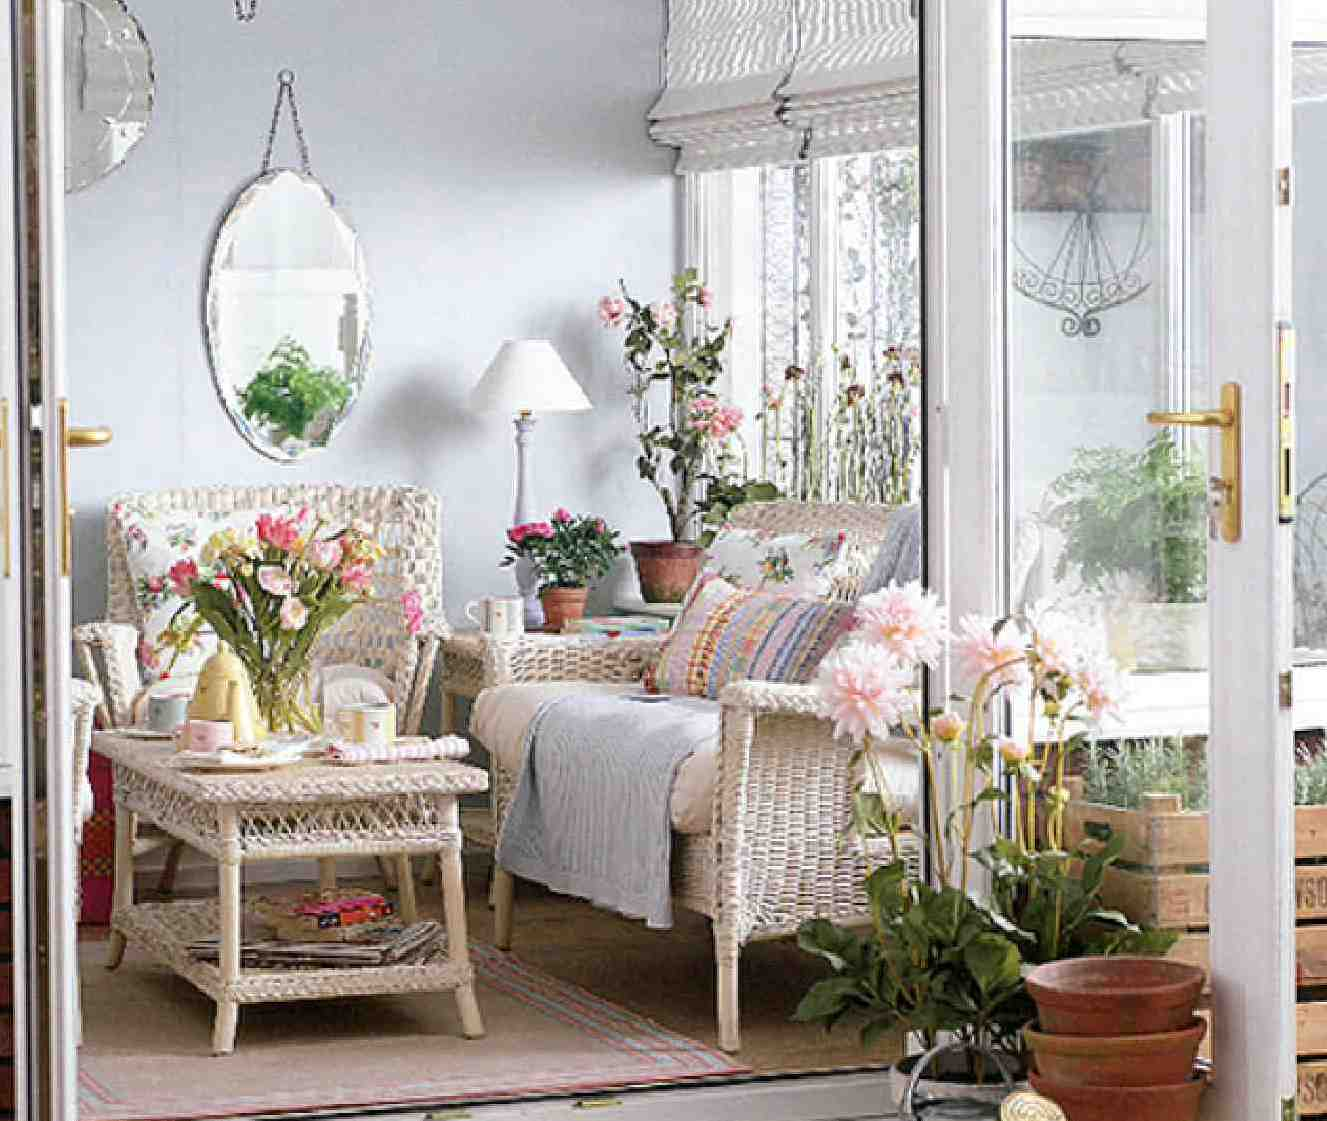 Aesthetic landscape - How to decorate with spring flowers ...